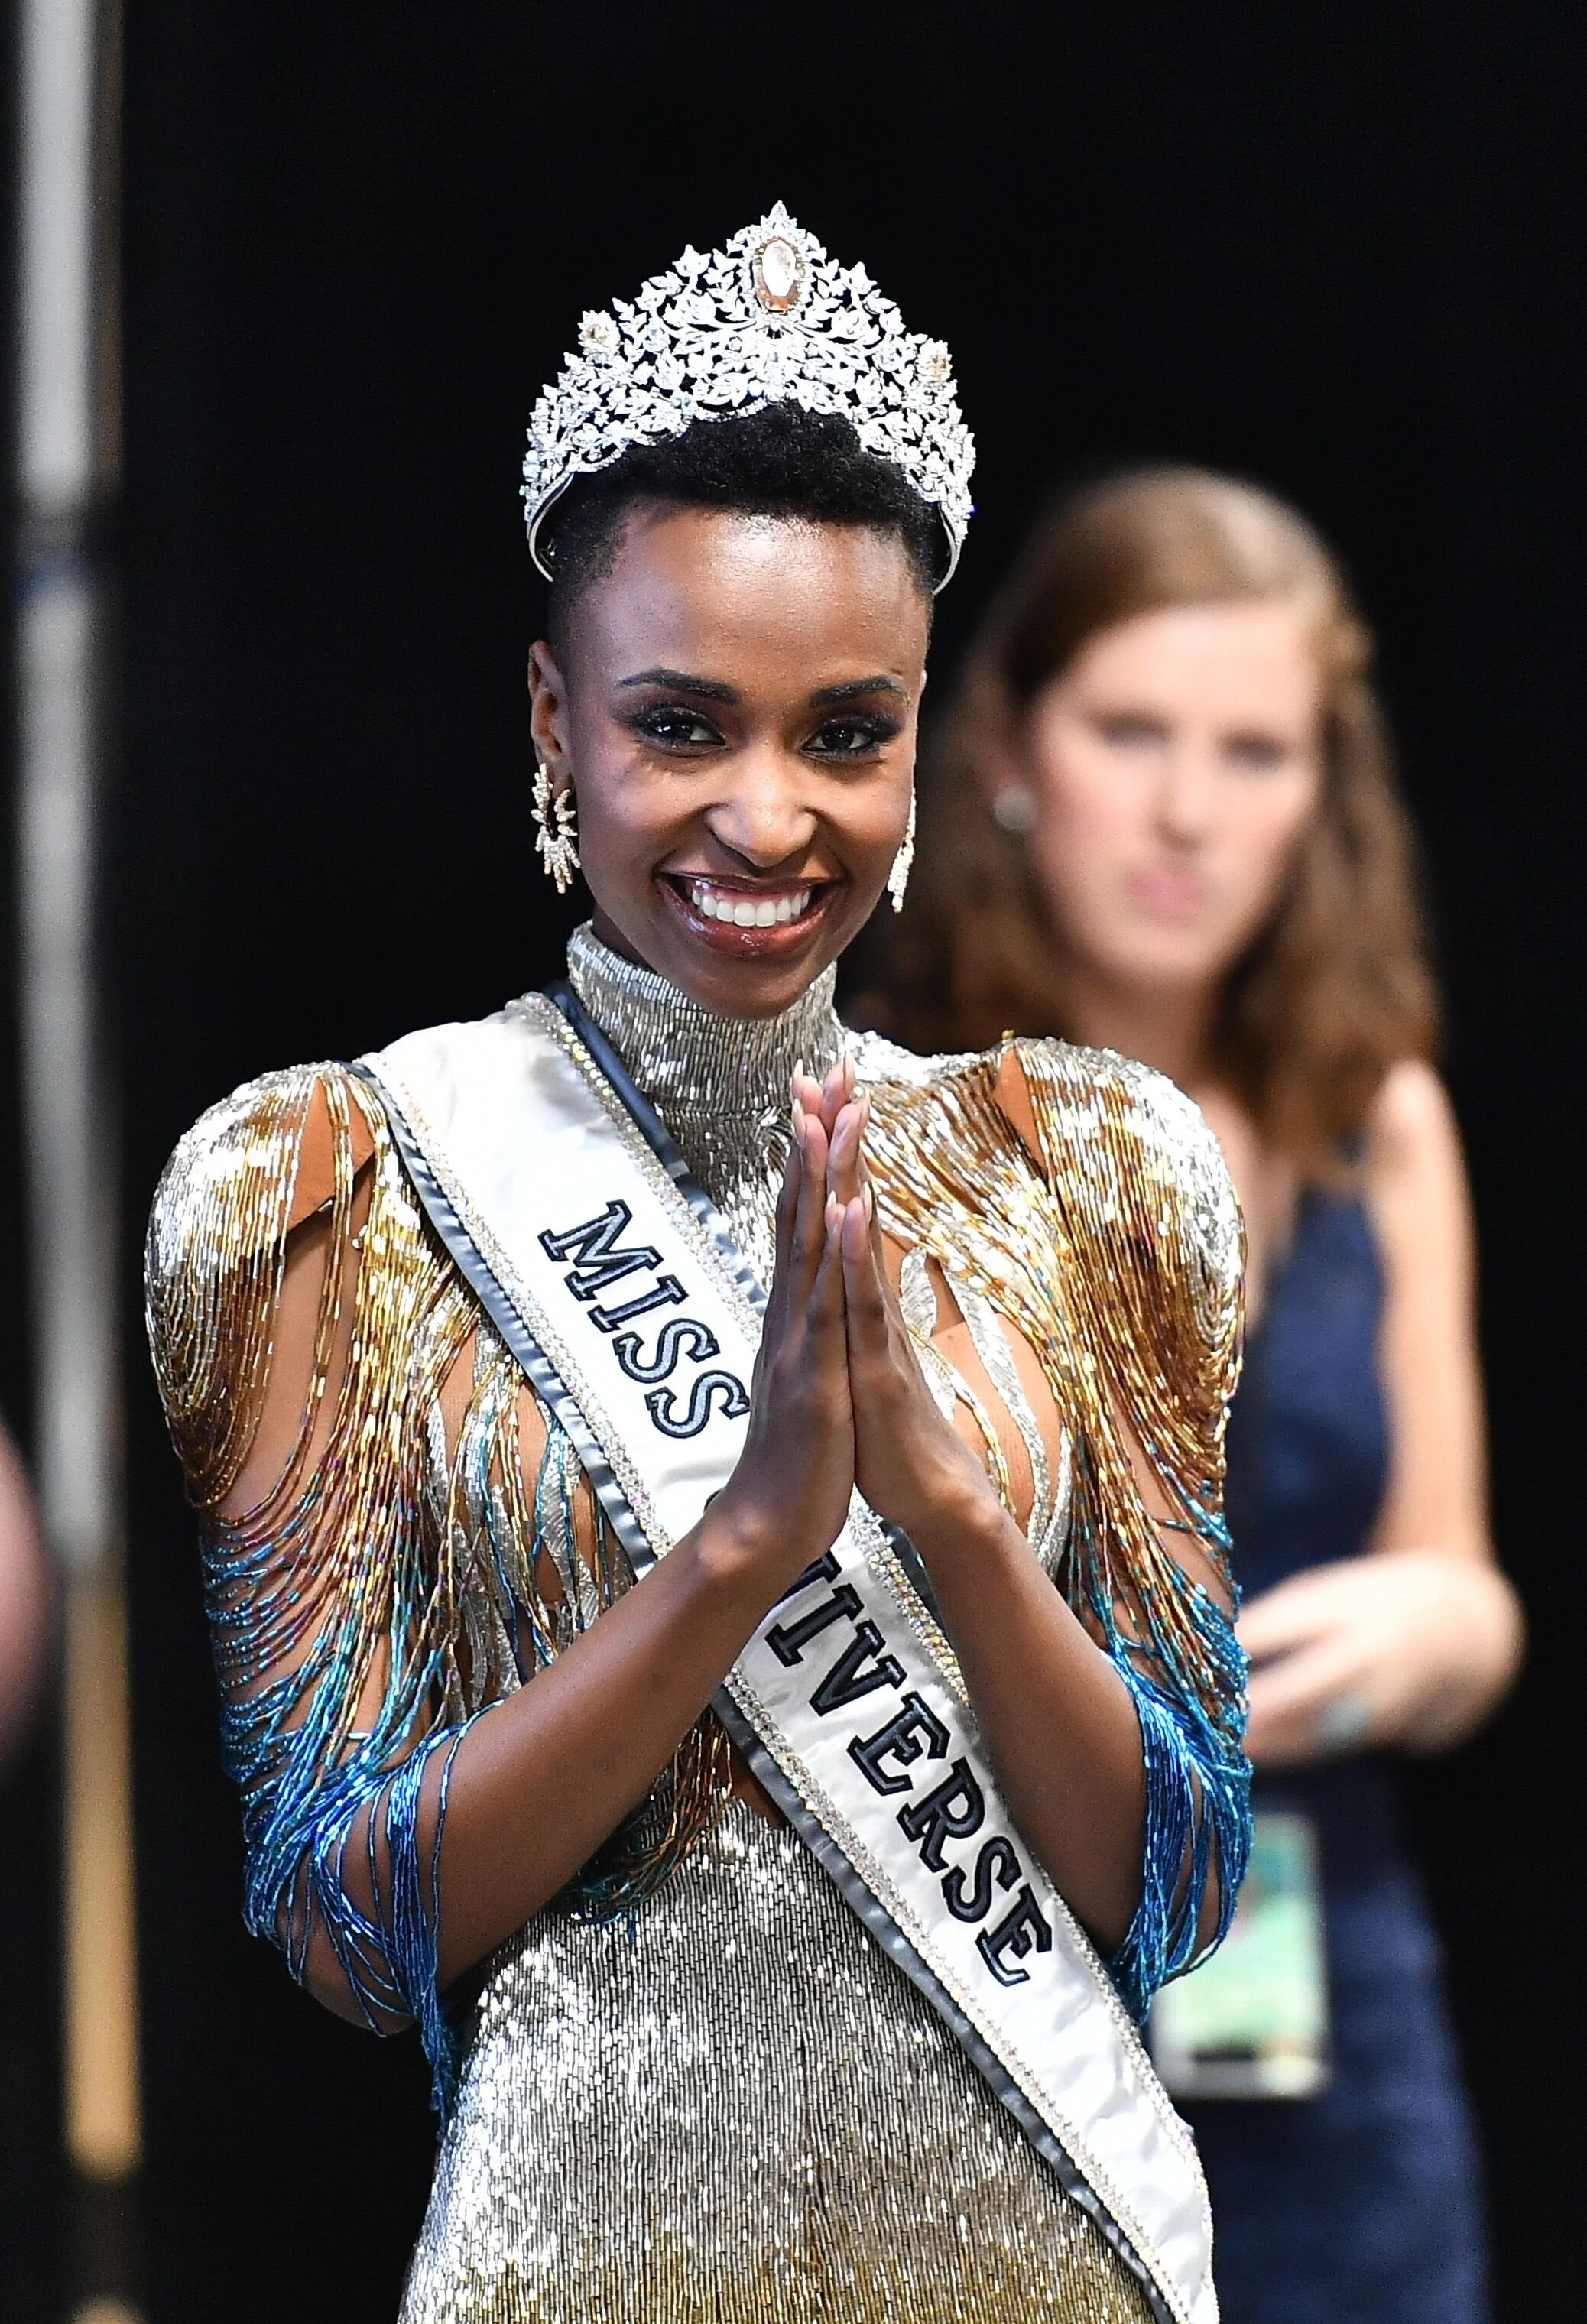 Zozibini Tunzi after being crowned Miss Universe 2019 | Source: Getty Images/GlobalImagesUkraine